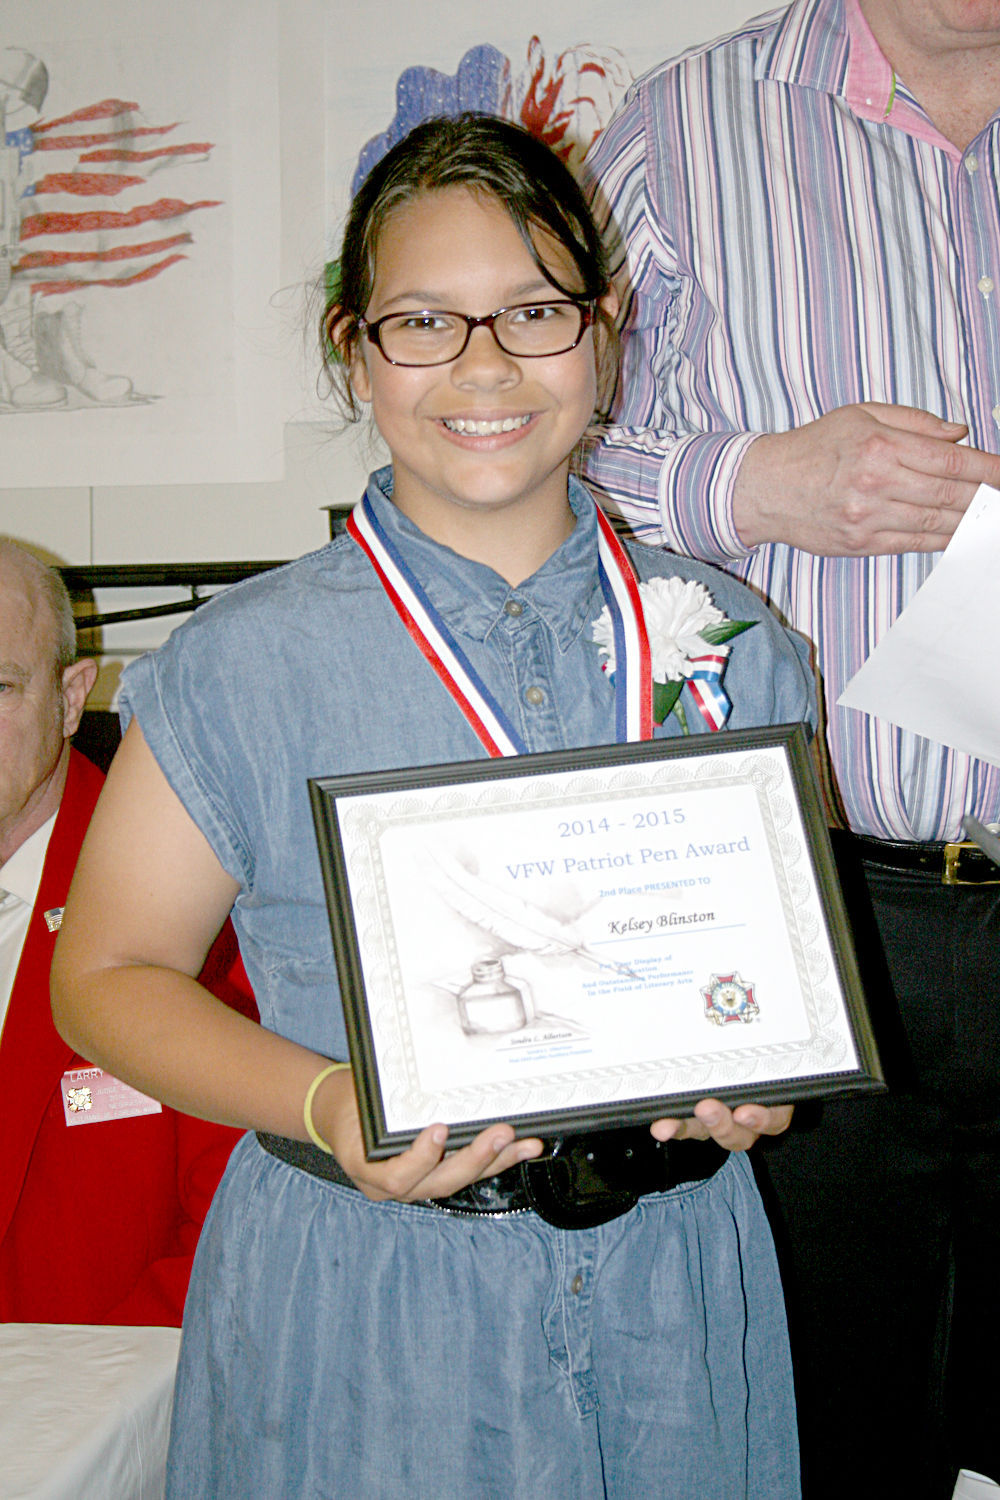 patriot pen essay contest Shelburne community school eighth grader hannahjulia woodward has won a state essay competition and scholarship award from the veterans of foreign wars for an entry in the annual patriot's pen contest woodward, 13, submitted an entry to the vermont veterans for foreign wars post 782, howard plant post and it was recognized at several levels.